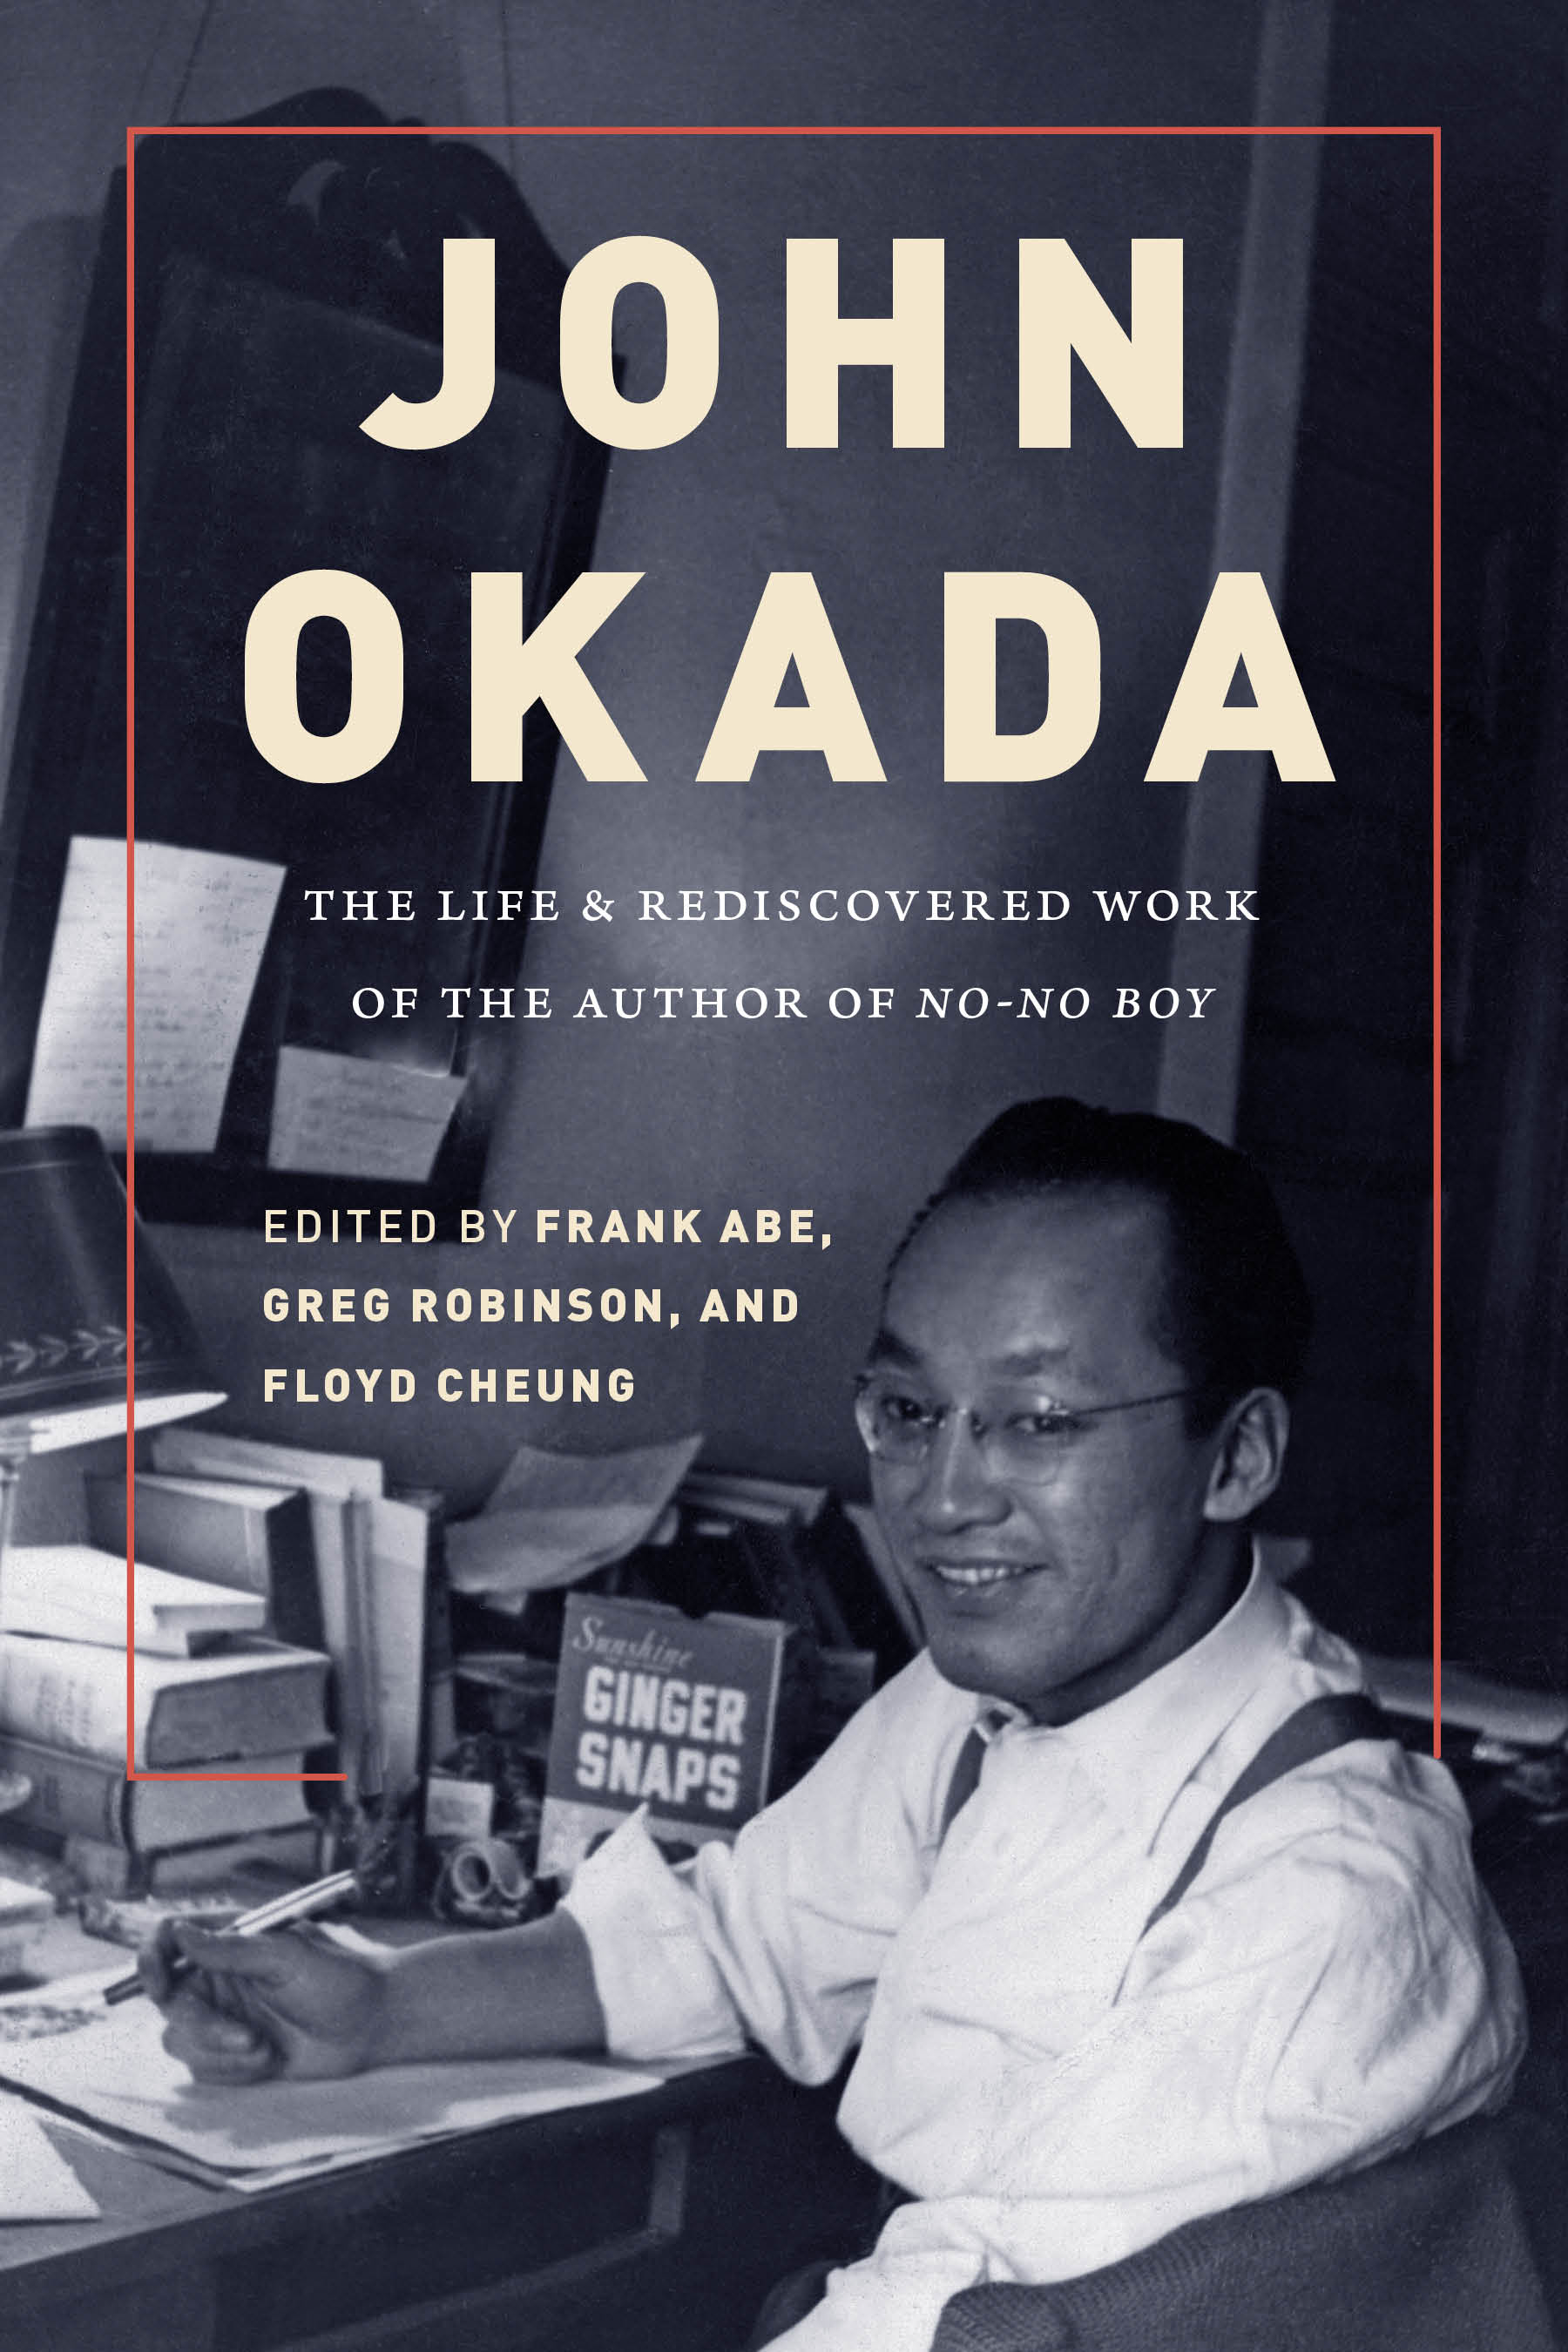 John Okada at desk in New York City, 1949